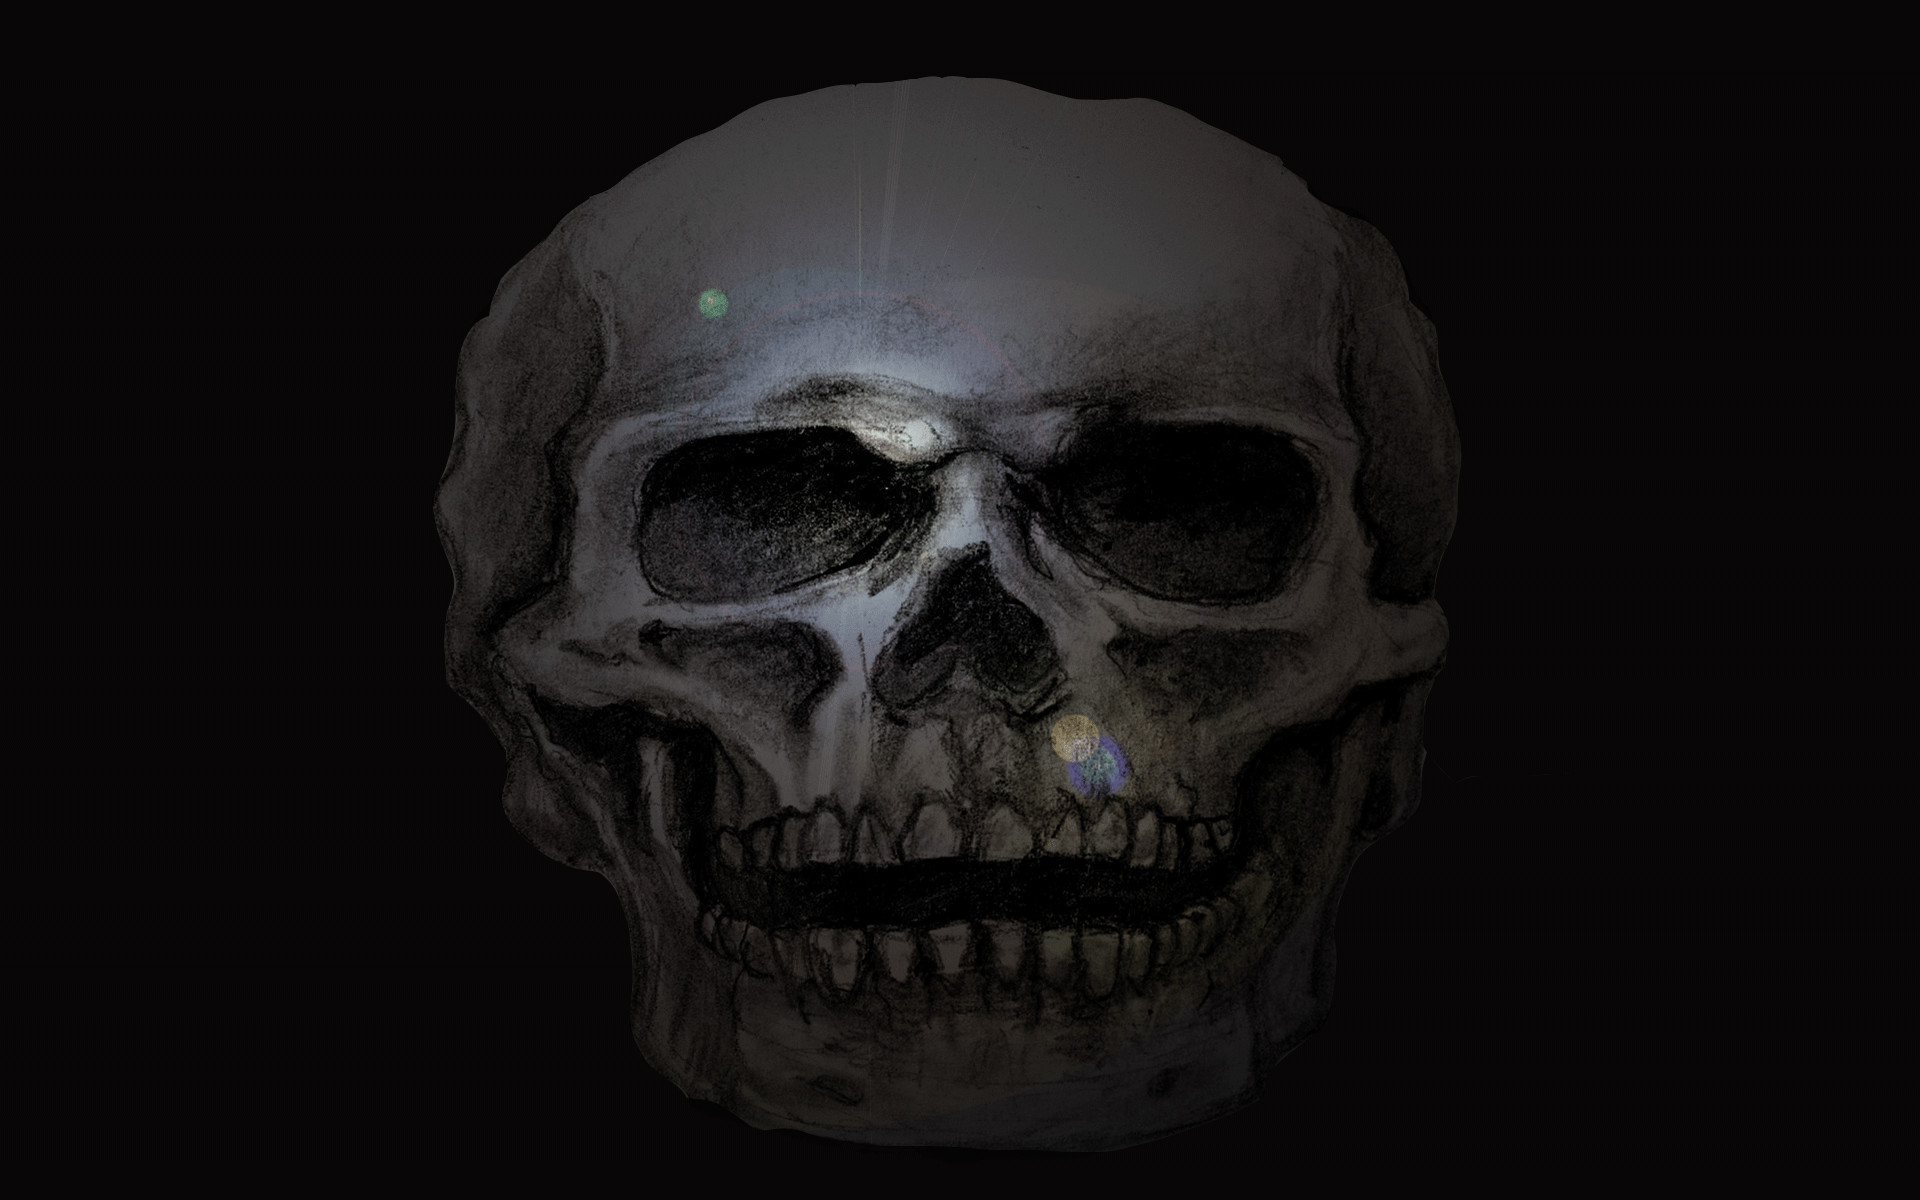 Skull Desktop Computer Wallpaper Background And Animated GIF